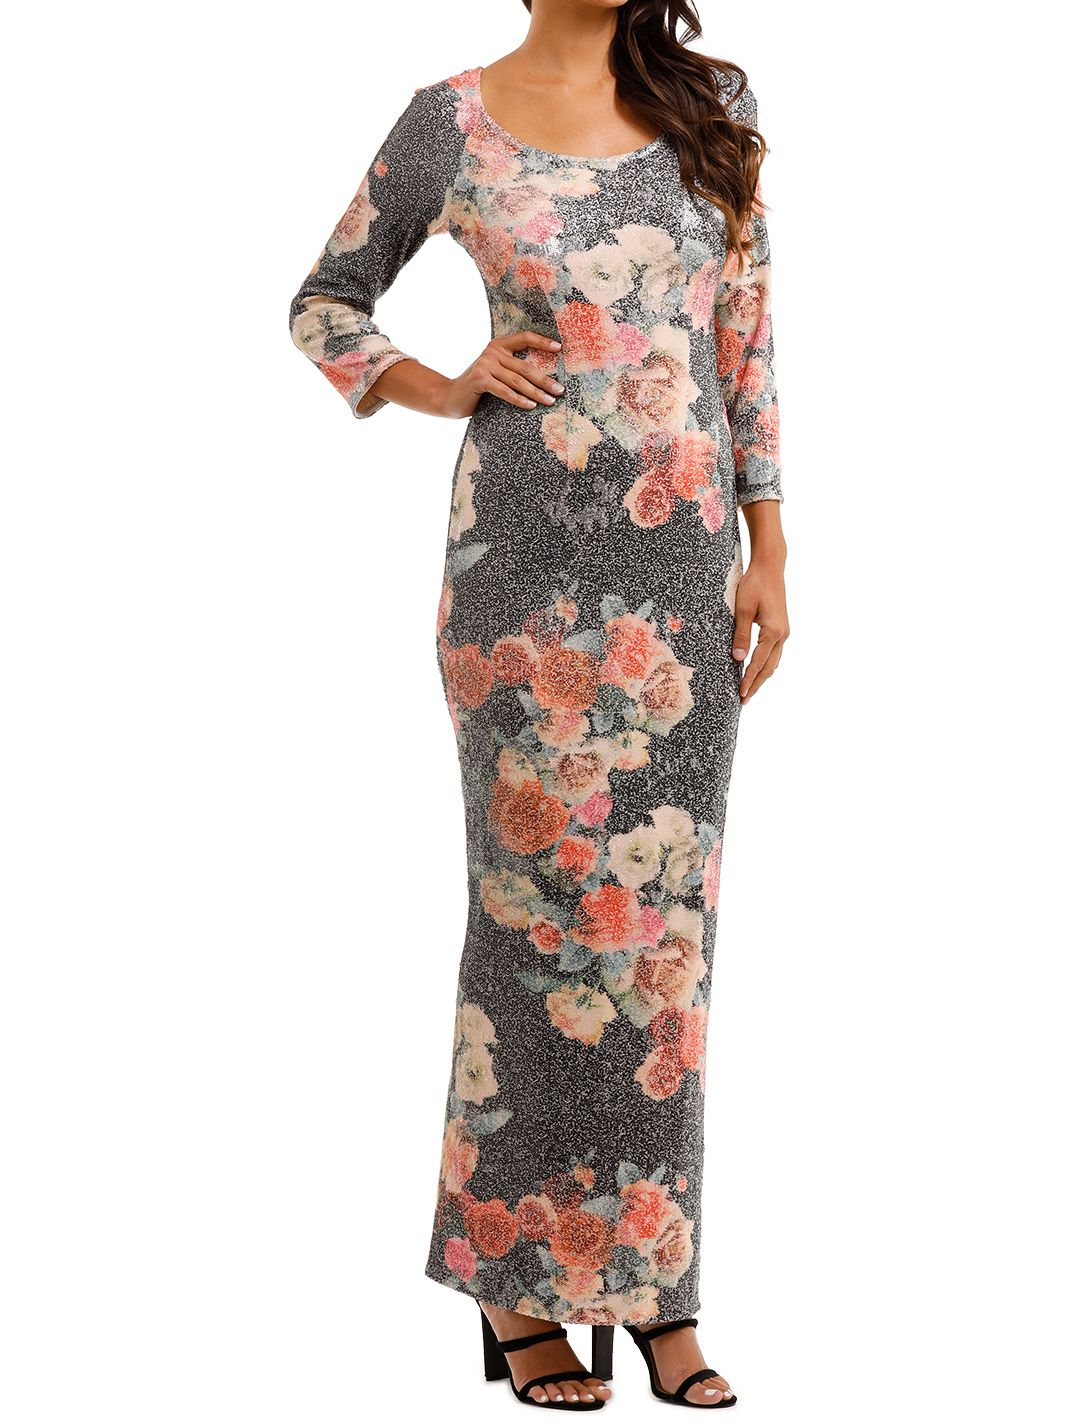 Moss and SpyMatisse Gown Floral Multi Floor Length